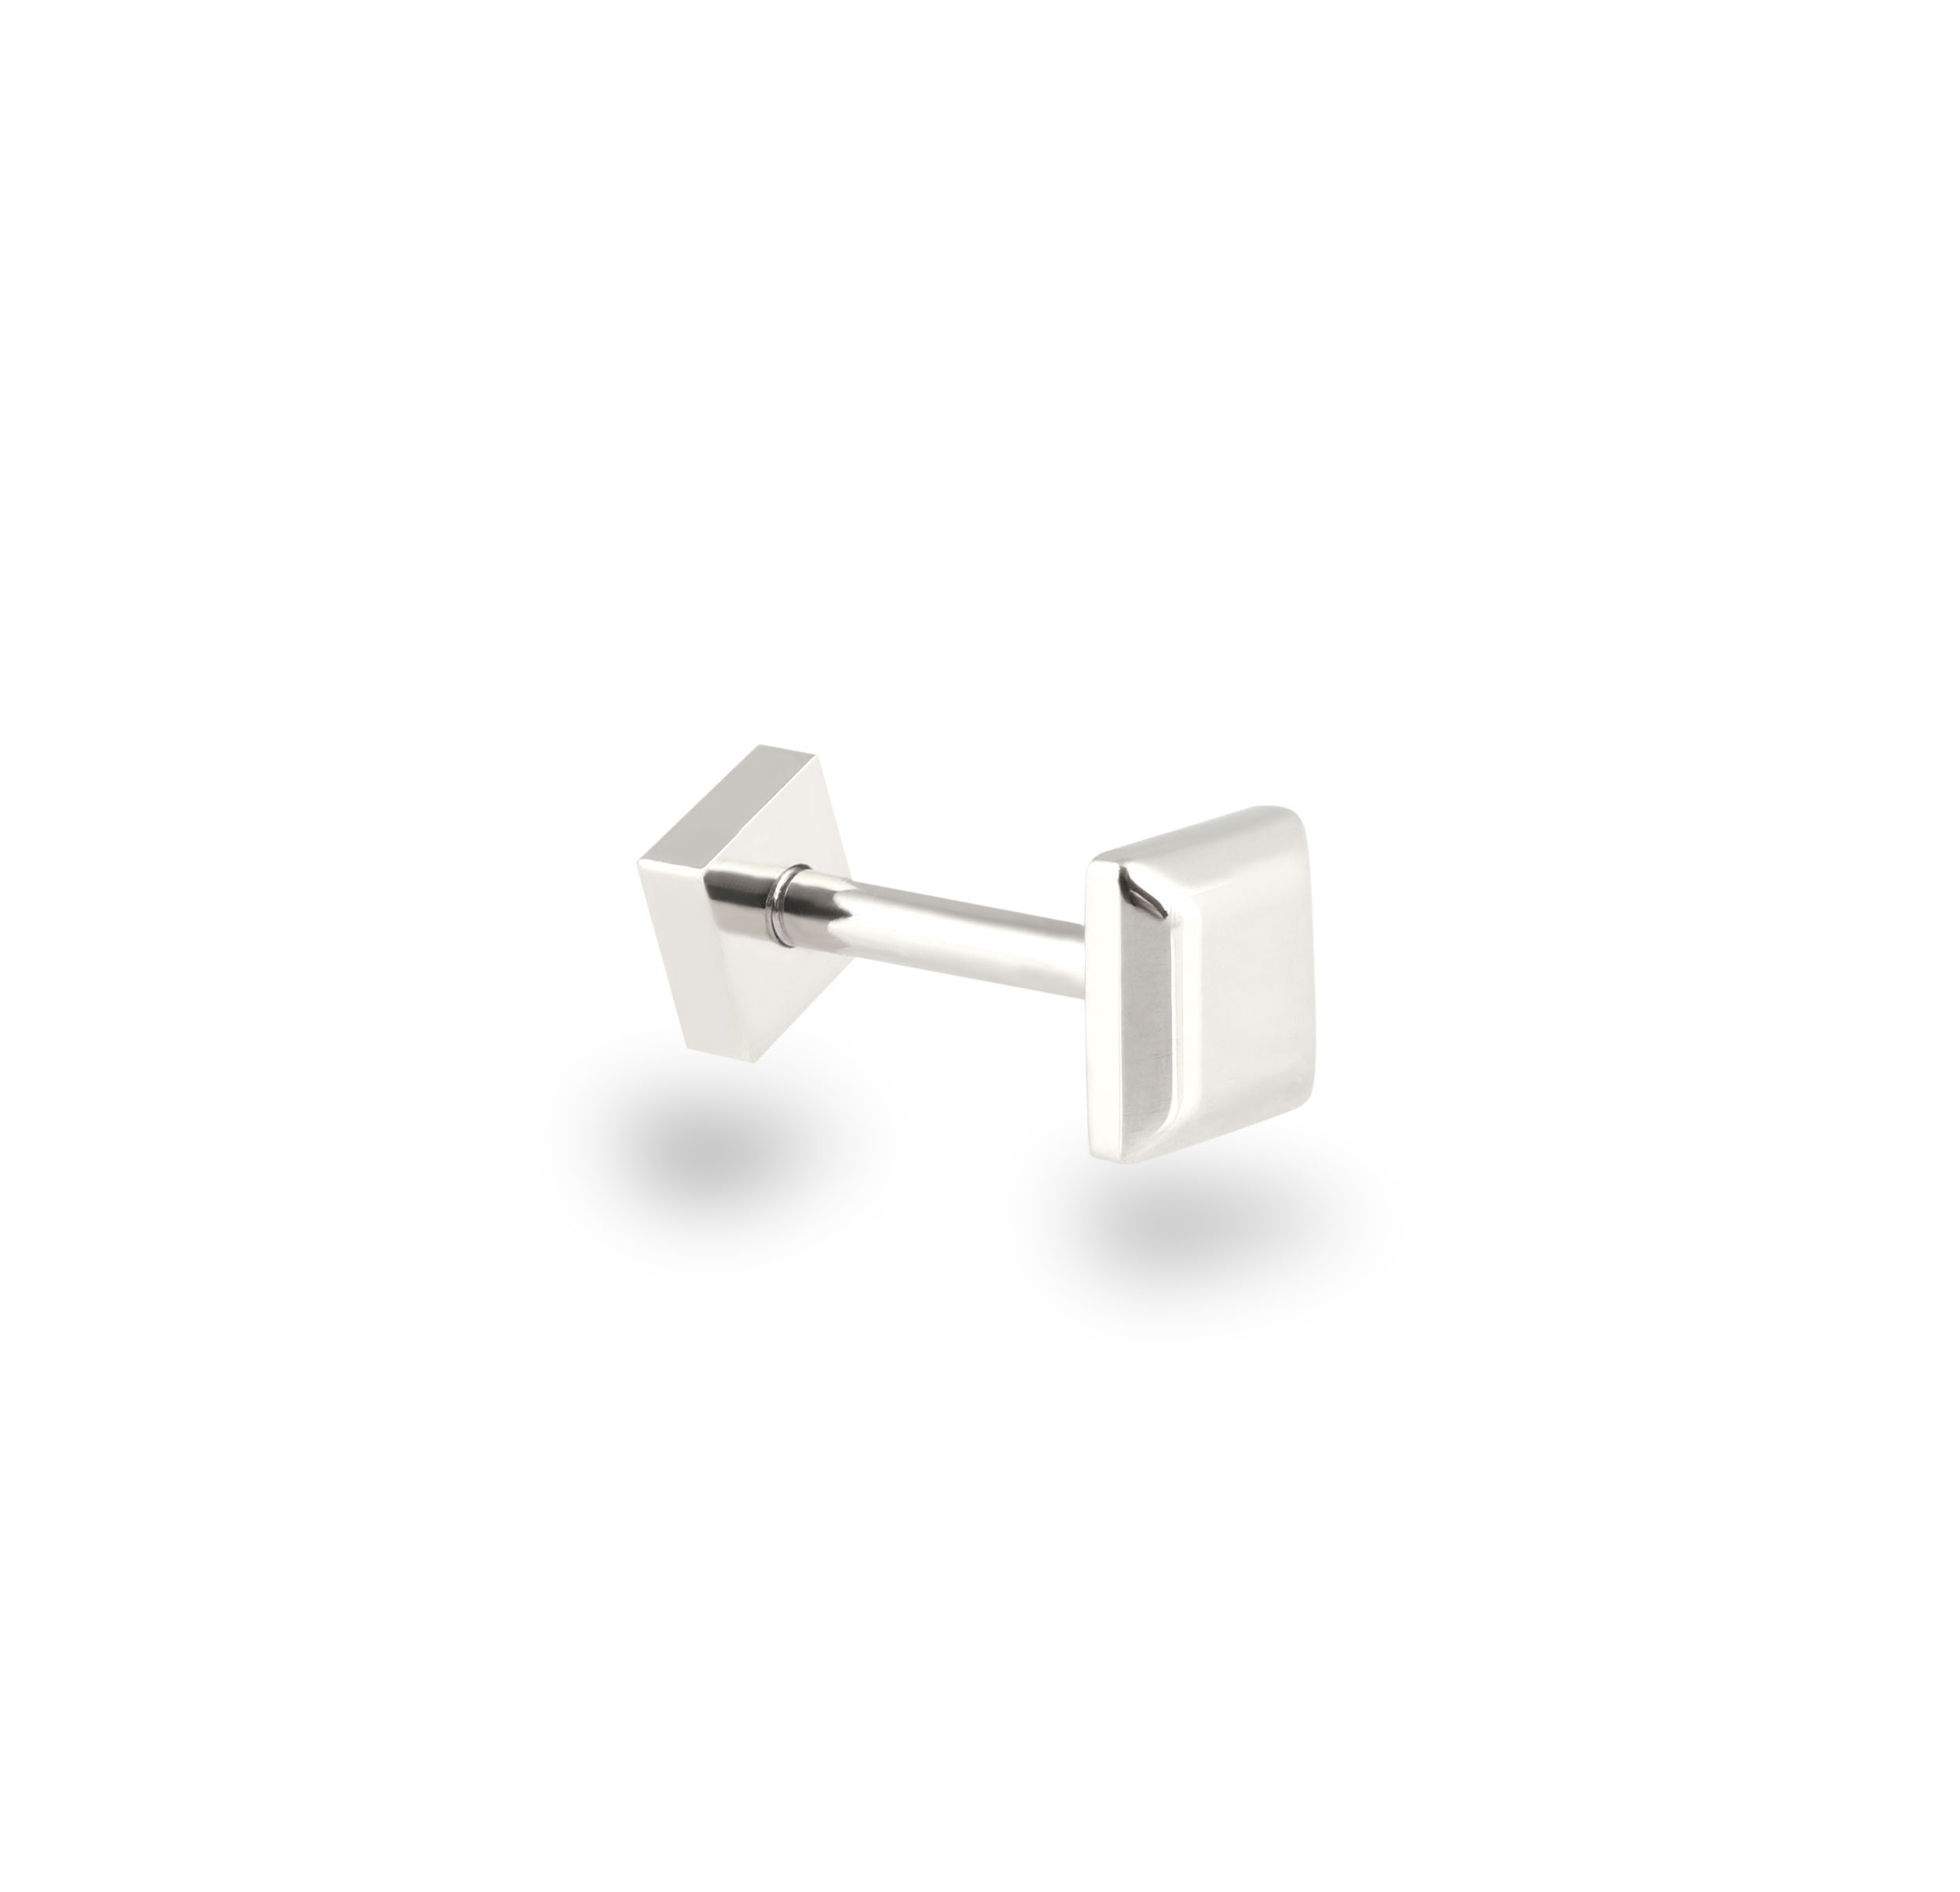 18k-white-gold-plain-minimalistic-piercing-studs-screw-backs-gold-buy-online-lena-cohen-uk-london-best-cartilage-earrings